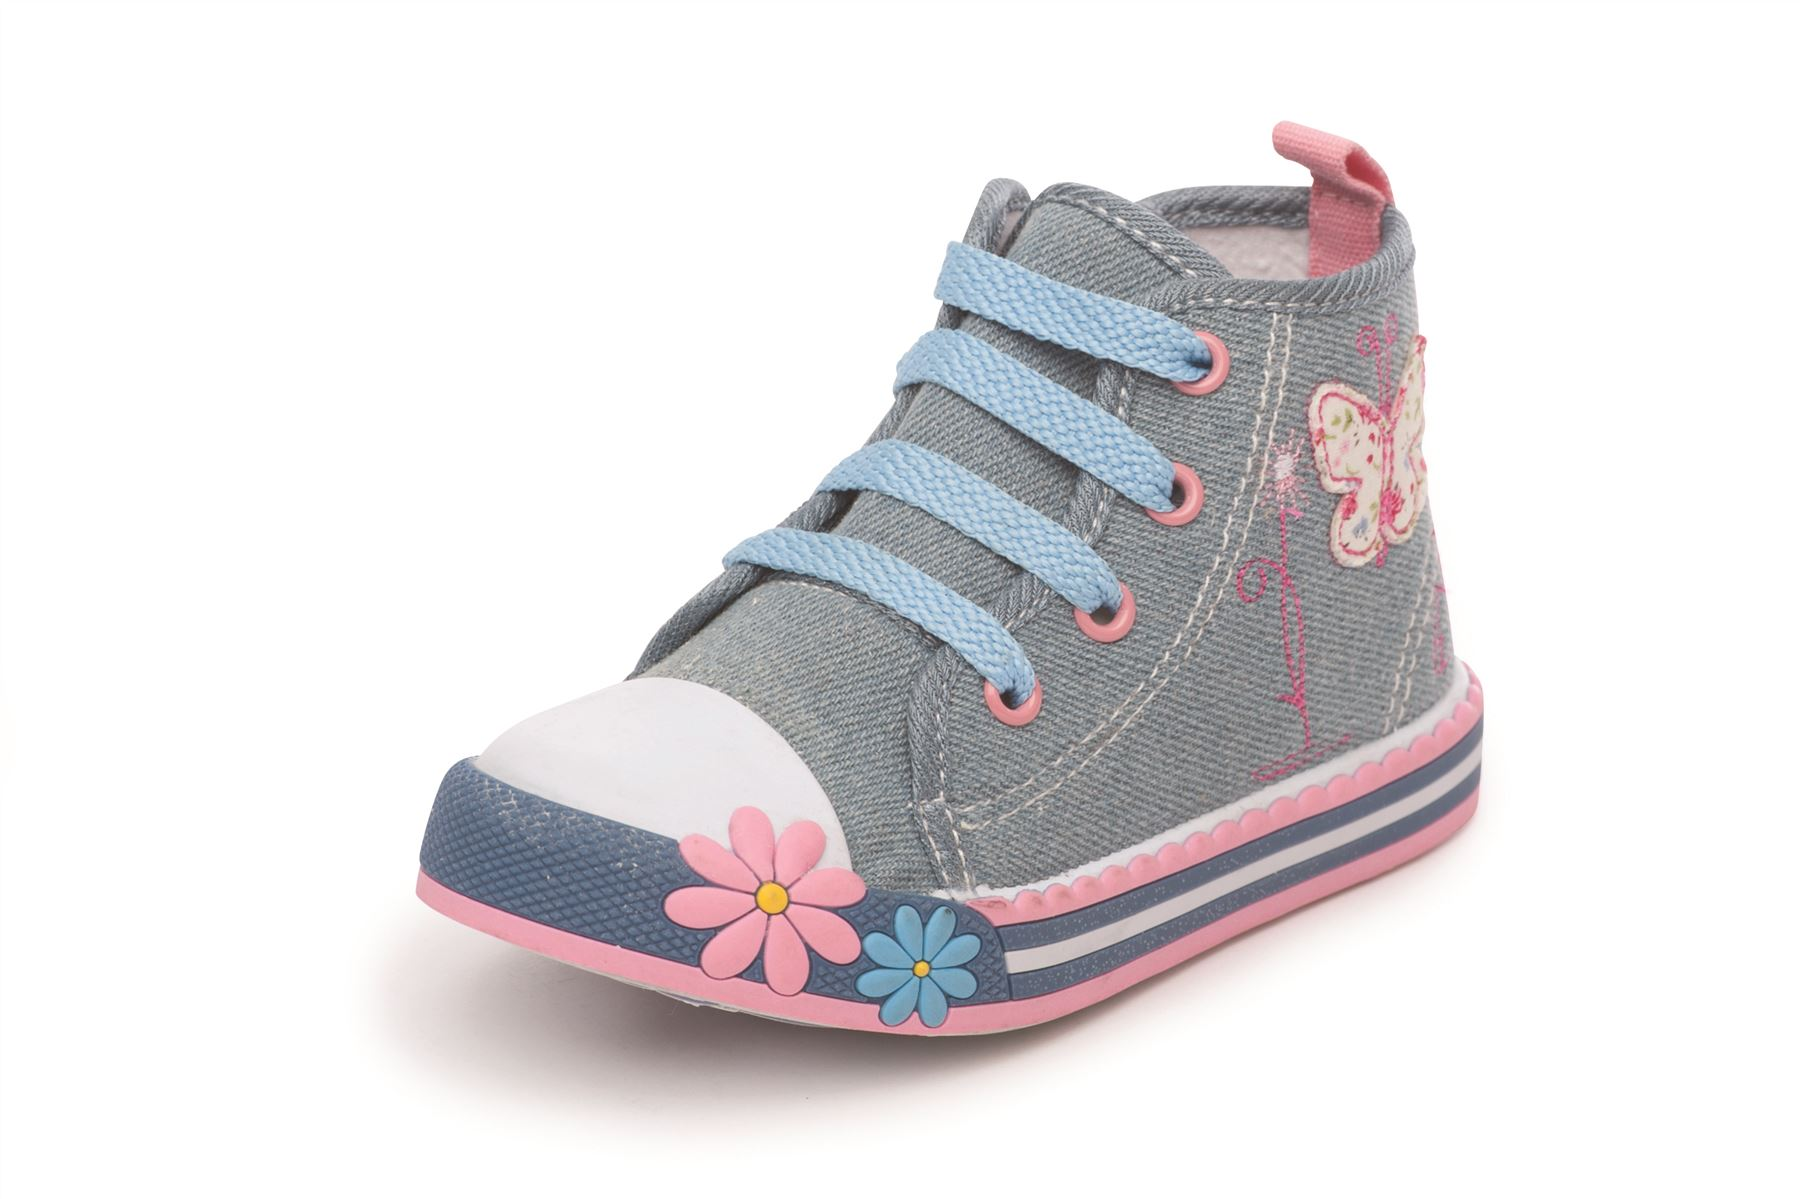 GIRLS HIGH TOPS KIDS TRAINERS INFANTS - 155.8KB